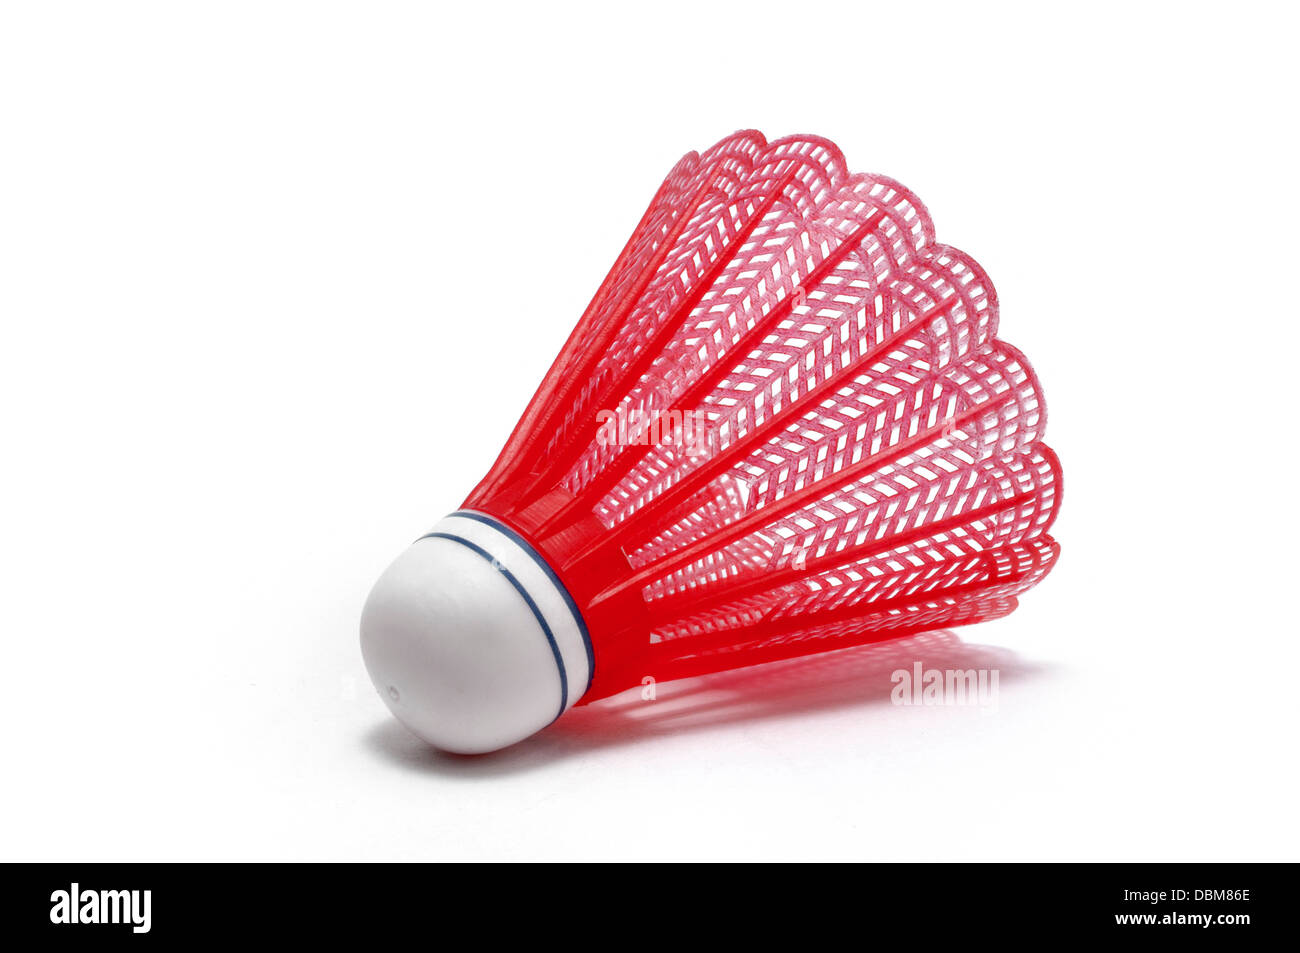 Red Badminton Shuttlecock (Birdie) isolated on white - Stock Image